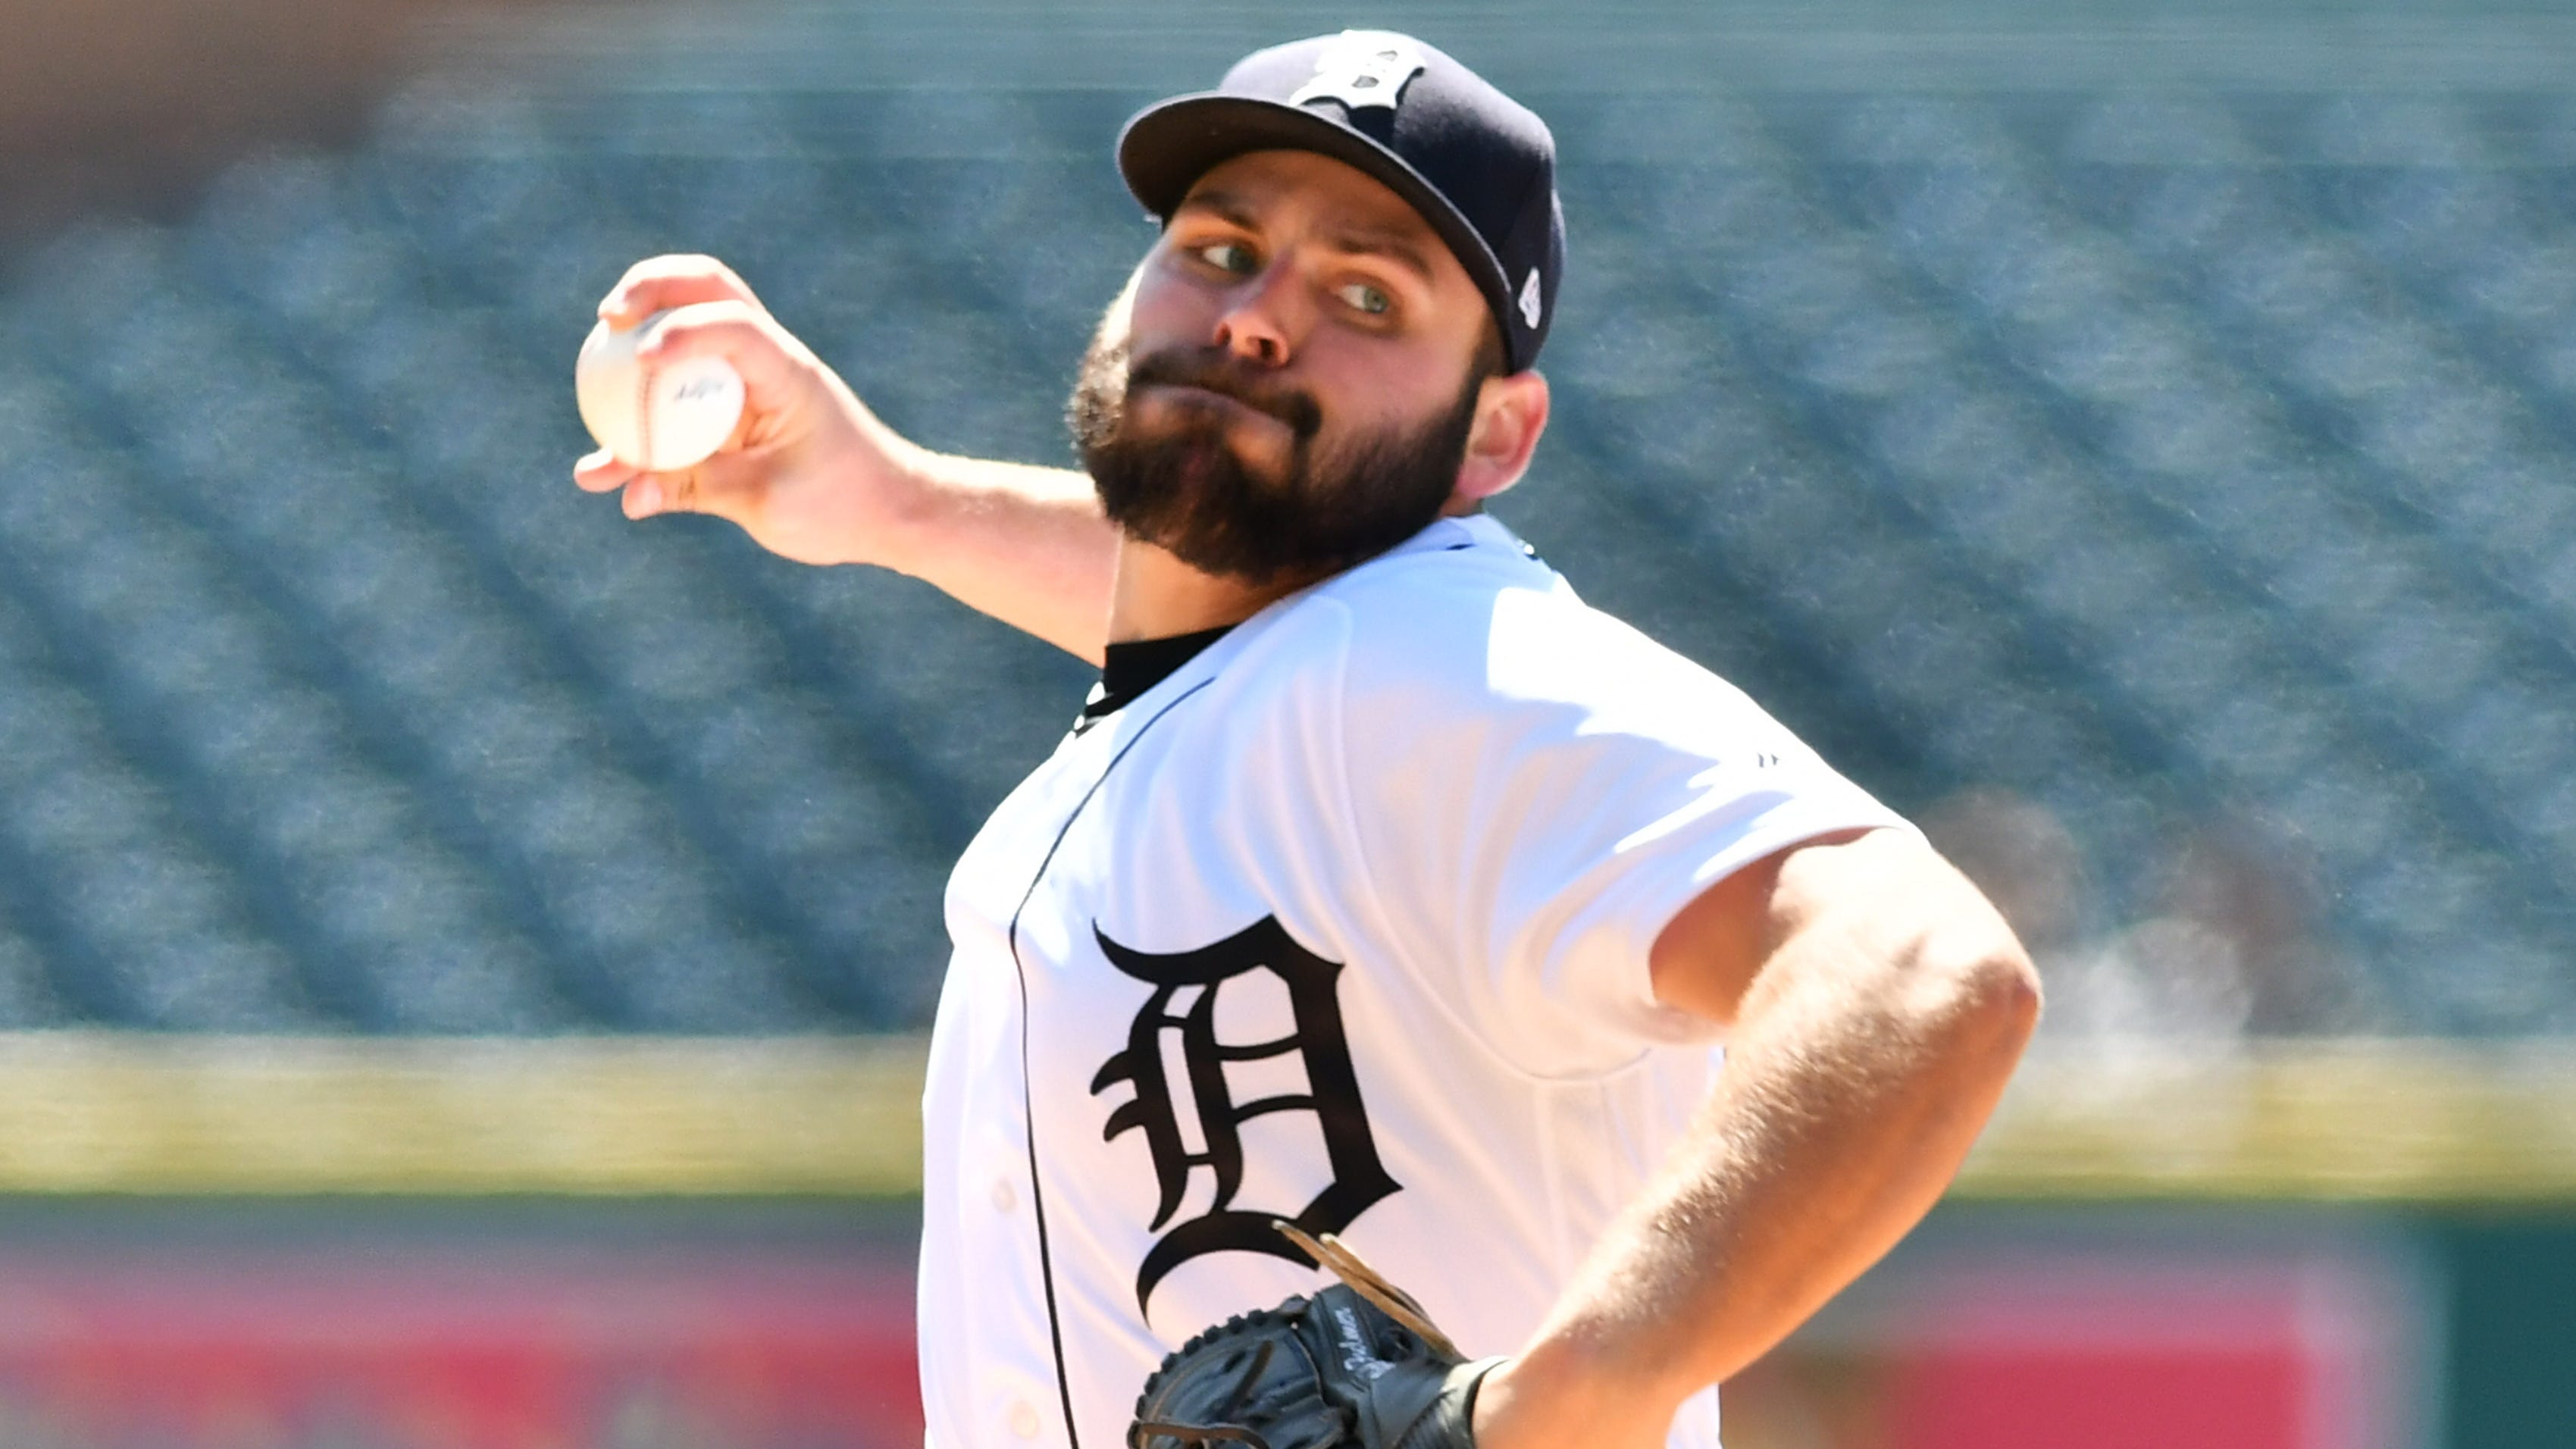 Tigers pitcher Michael Fulmer threw two scoreless innings in a rehab start for Single-A Lakeland on Tuesday.